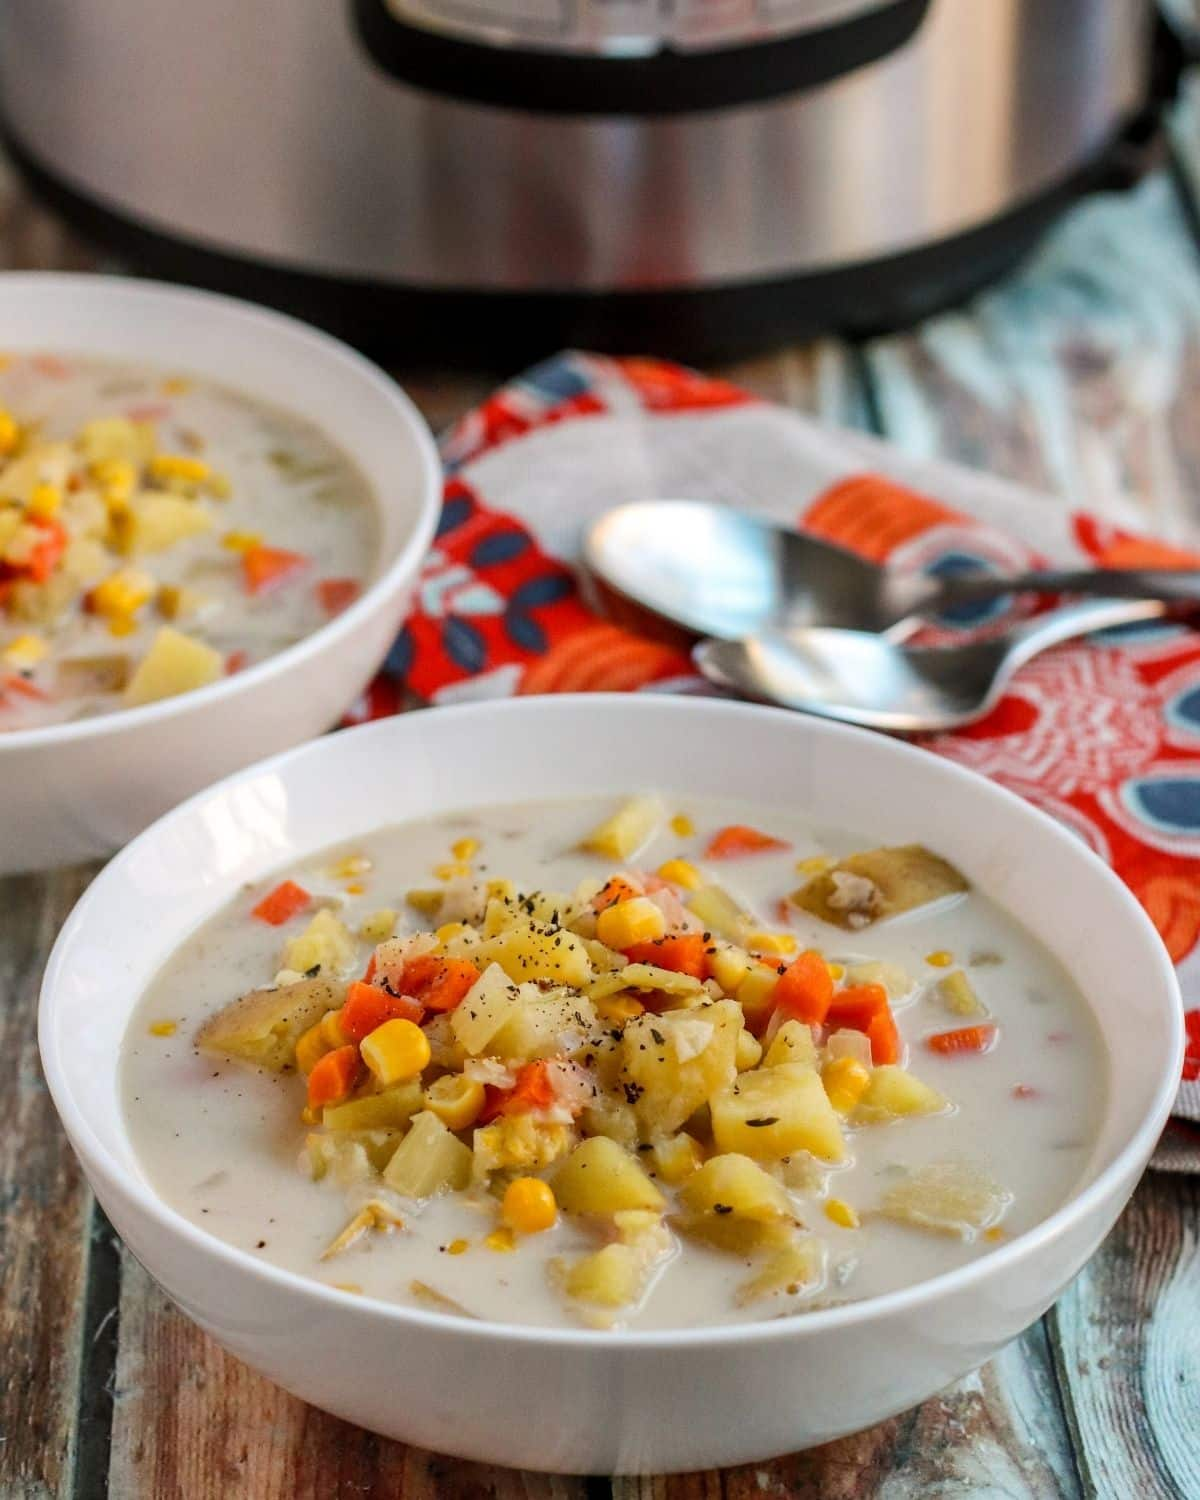 Bowls of chowder with Instant Pot in the background